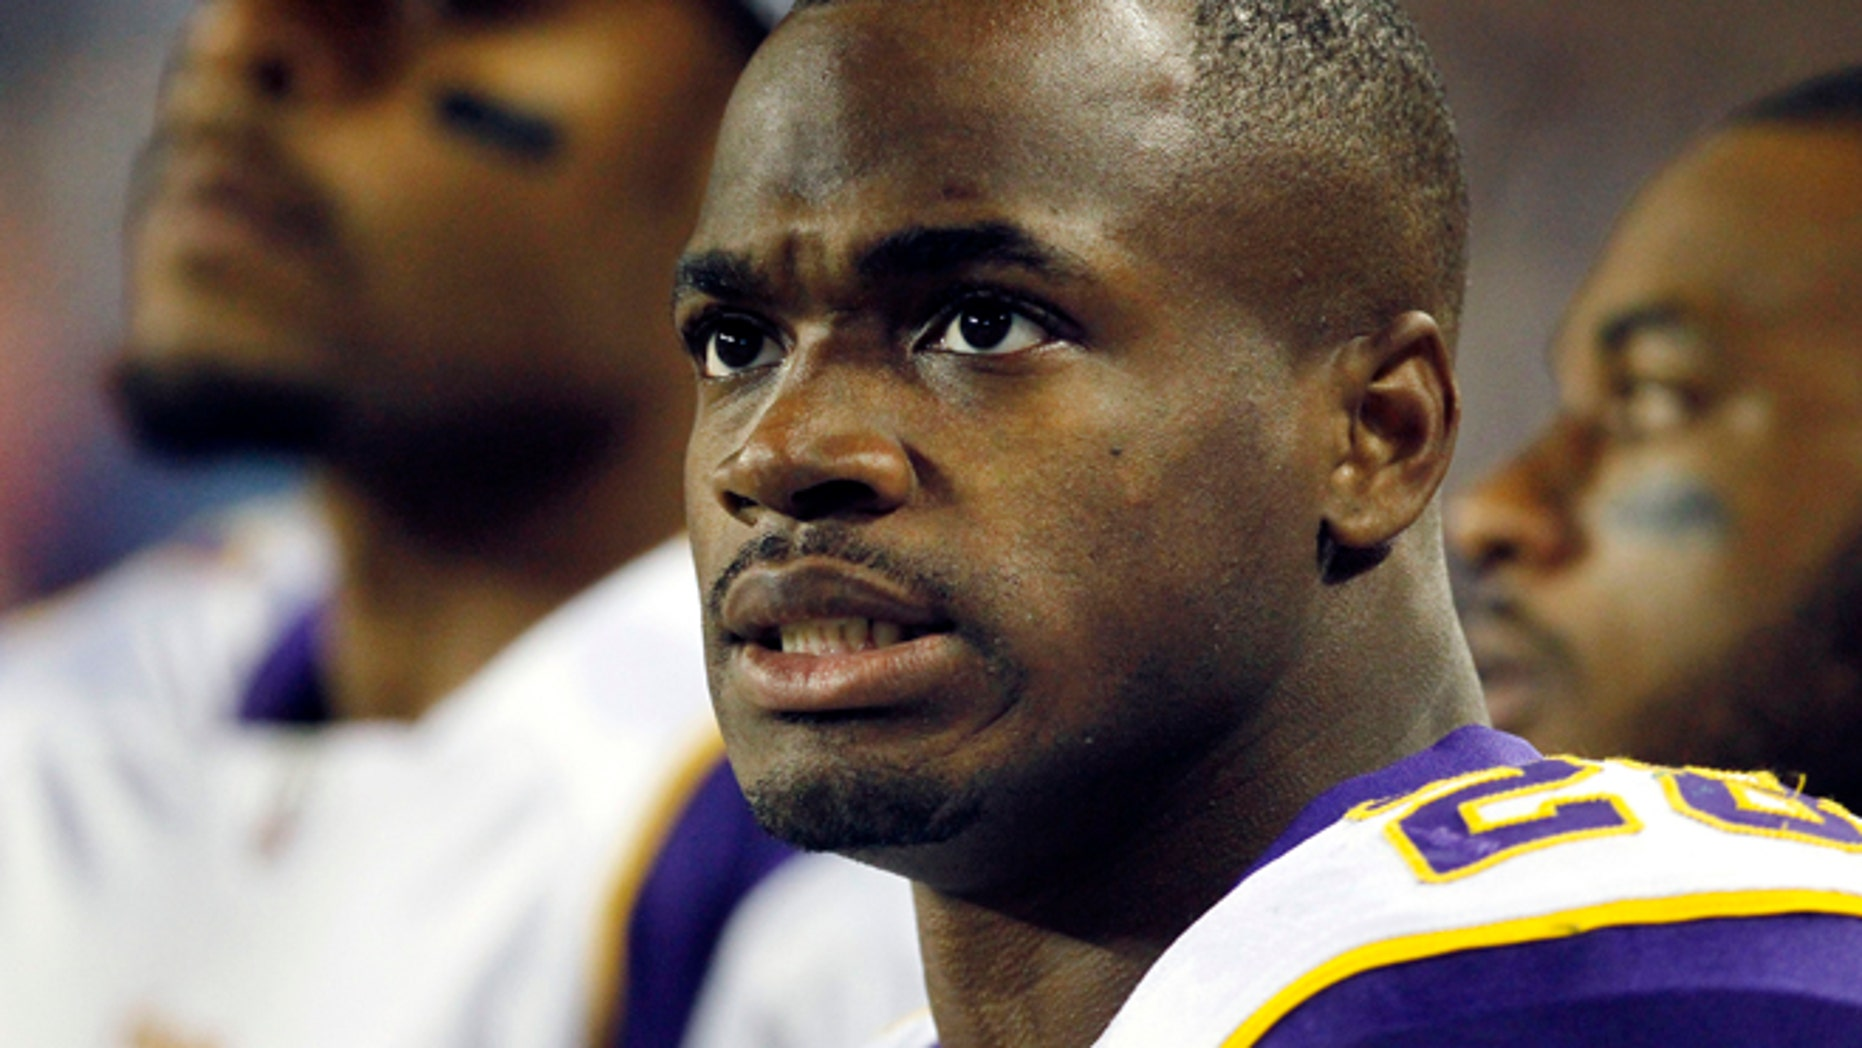 Oct. 16, 2011: In this file photo, Minnesota Vikings running back Adrian Peterson watches from the sidelines during the first half of an NFL football game in Chicago. (AP)